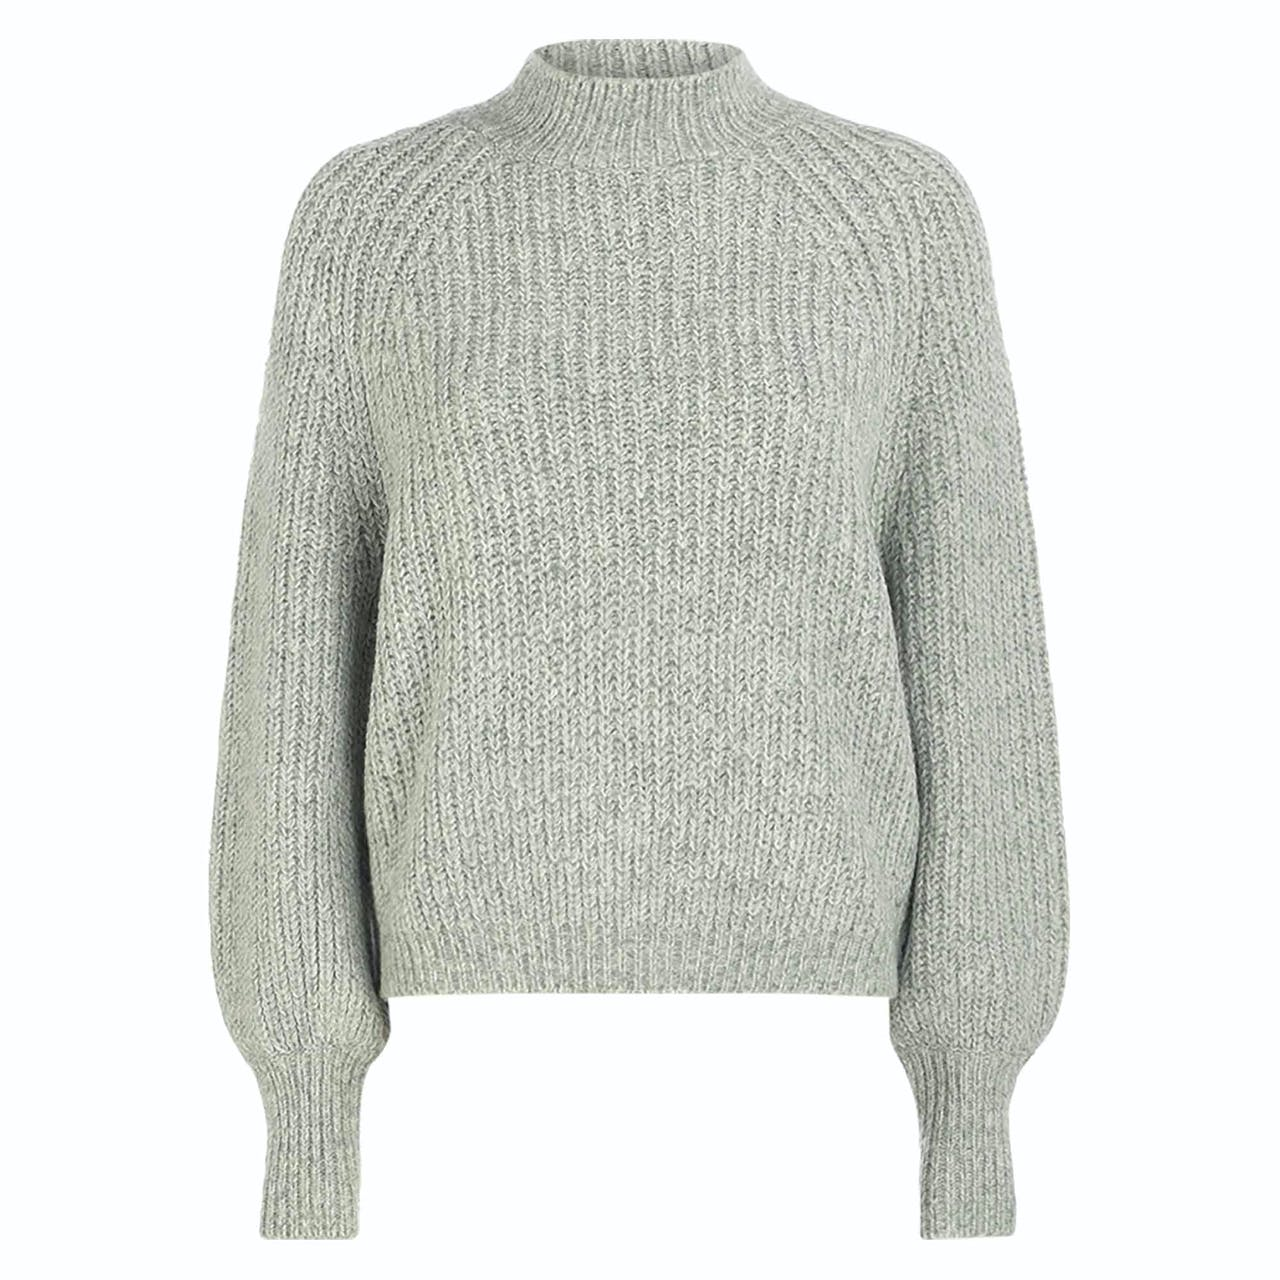 Strickpullover - Loose Fit - Pina